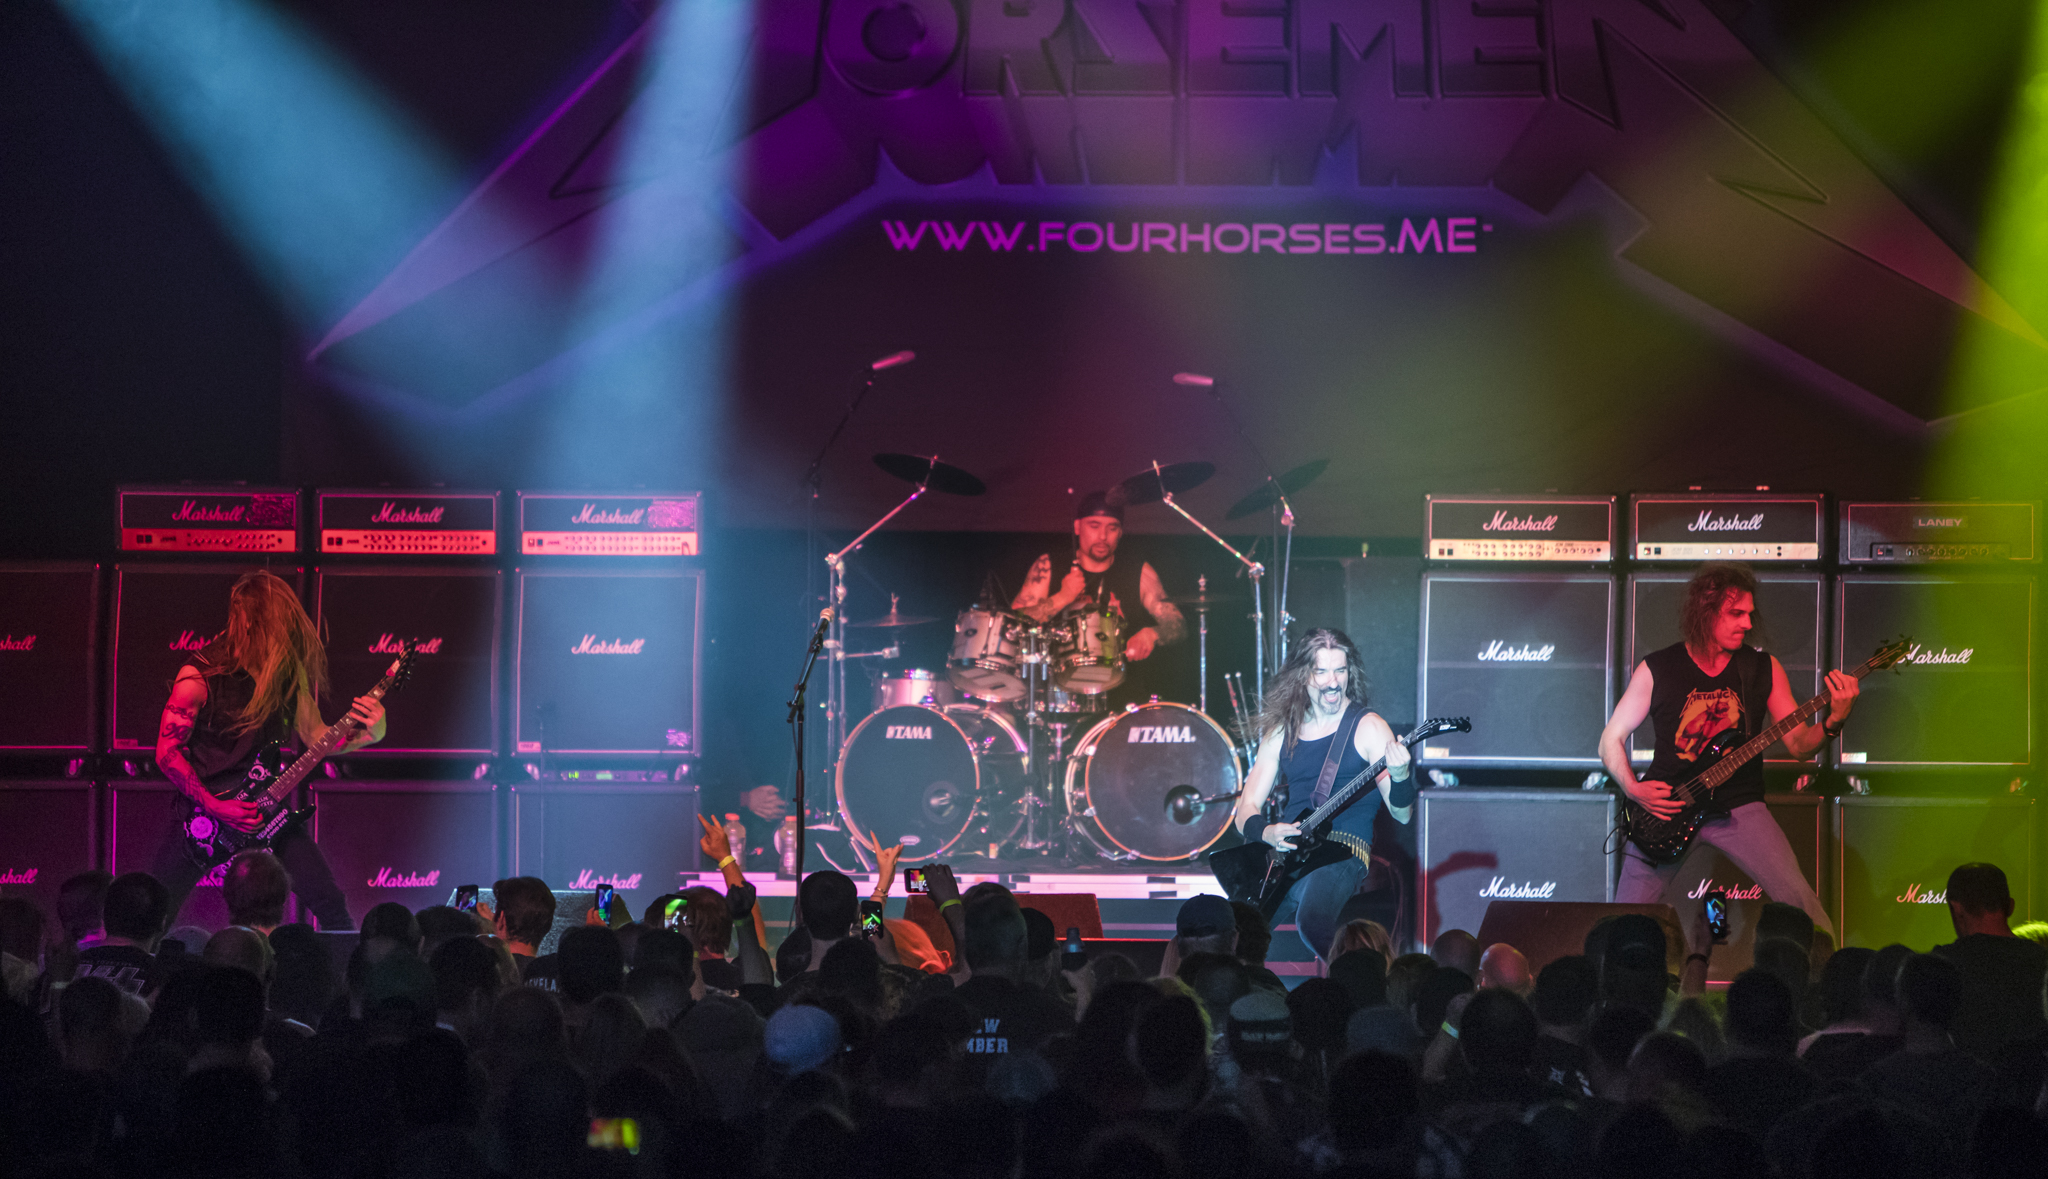 The Four Horsemen - Maybe you haven't heard of us.  Maybe you have and want to know more.  We are musicians with a love of the thrash metal era.  The 80's music that changed the game. If you want to see a show that is truly electric, if you want to hear the songs played correctly and with ferocity.. and you want to be the most important aspect of that show - you need to be where we are live.  Our fans are the only reason we exist.  Our fans are - simply put: Thrash Metal Metallica Fans.  The best in the world.  We take the music, the sound, the energy and our crowd seriously.  Few tribute bands pay close attention to the precision and dynamics of the band they tribute.  There is no glossing over parts when it comes to our band.  You will hear EVERY blistering fast double bass drum line, all the technical drum fills, guitar harmonies, solos, bass guitar shredding and gutteral vocals you heard on the albums.  We don't look like anyone in Metallica, our singer sings with grit but does not sound exactly like James.  But we  pride ourselves in being nearly album quality in delivery while putting on a very lively stage performance.  We are utterly decimated at the end of the night.  Drenched in sweat, blisters and a ton of gear to break down but we never complain.  Most live shots are blurry because we are always moving and thrashing.  Proud of those 'bad' pics.  Means we are doing our job right.